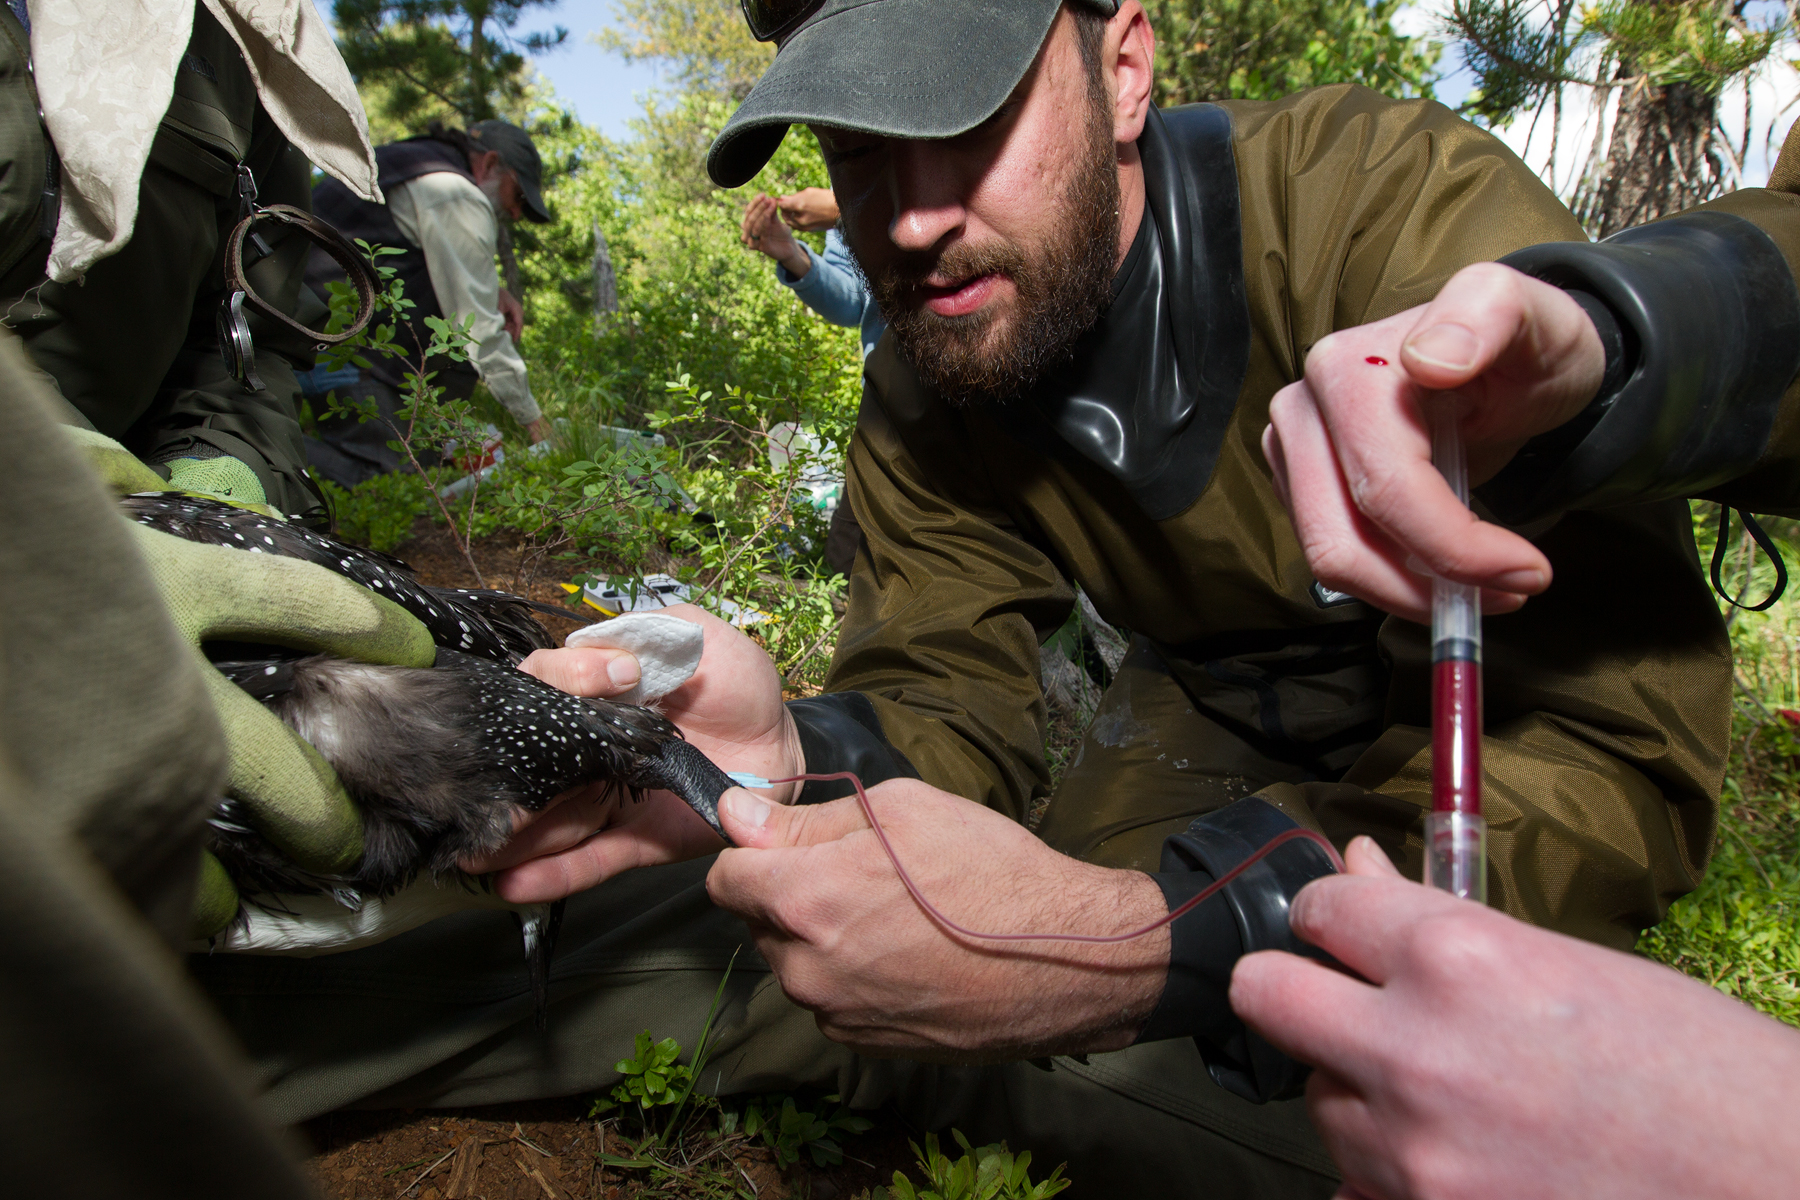 Carl Brown (left), Chris Persico (middle) and Michelle Kneeland (right) take blood samples of a common loon. These blood samples are used to measure many things, one of which being heavy metal contaminants. Blood sample results are then compared across North American Common Loon populations.   Image ©Connor Stefanison